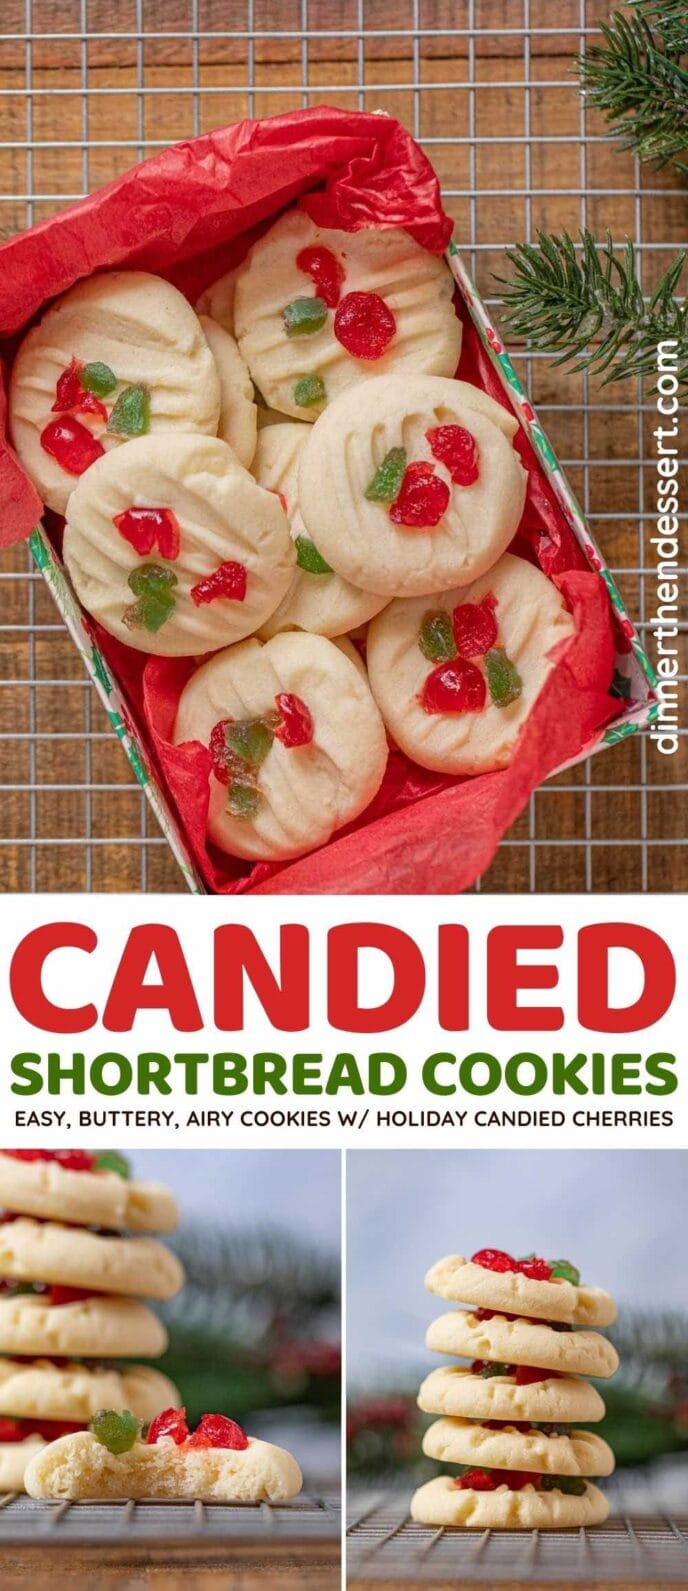 Candied Shortbread Cookies collage